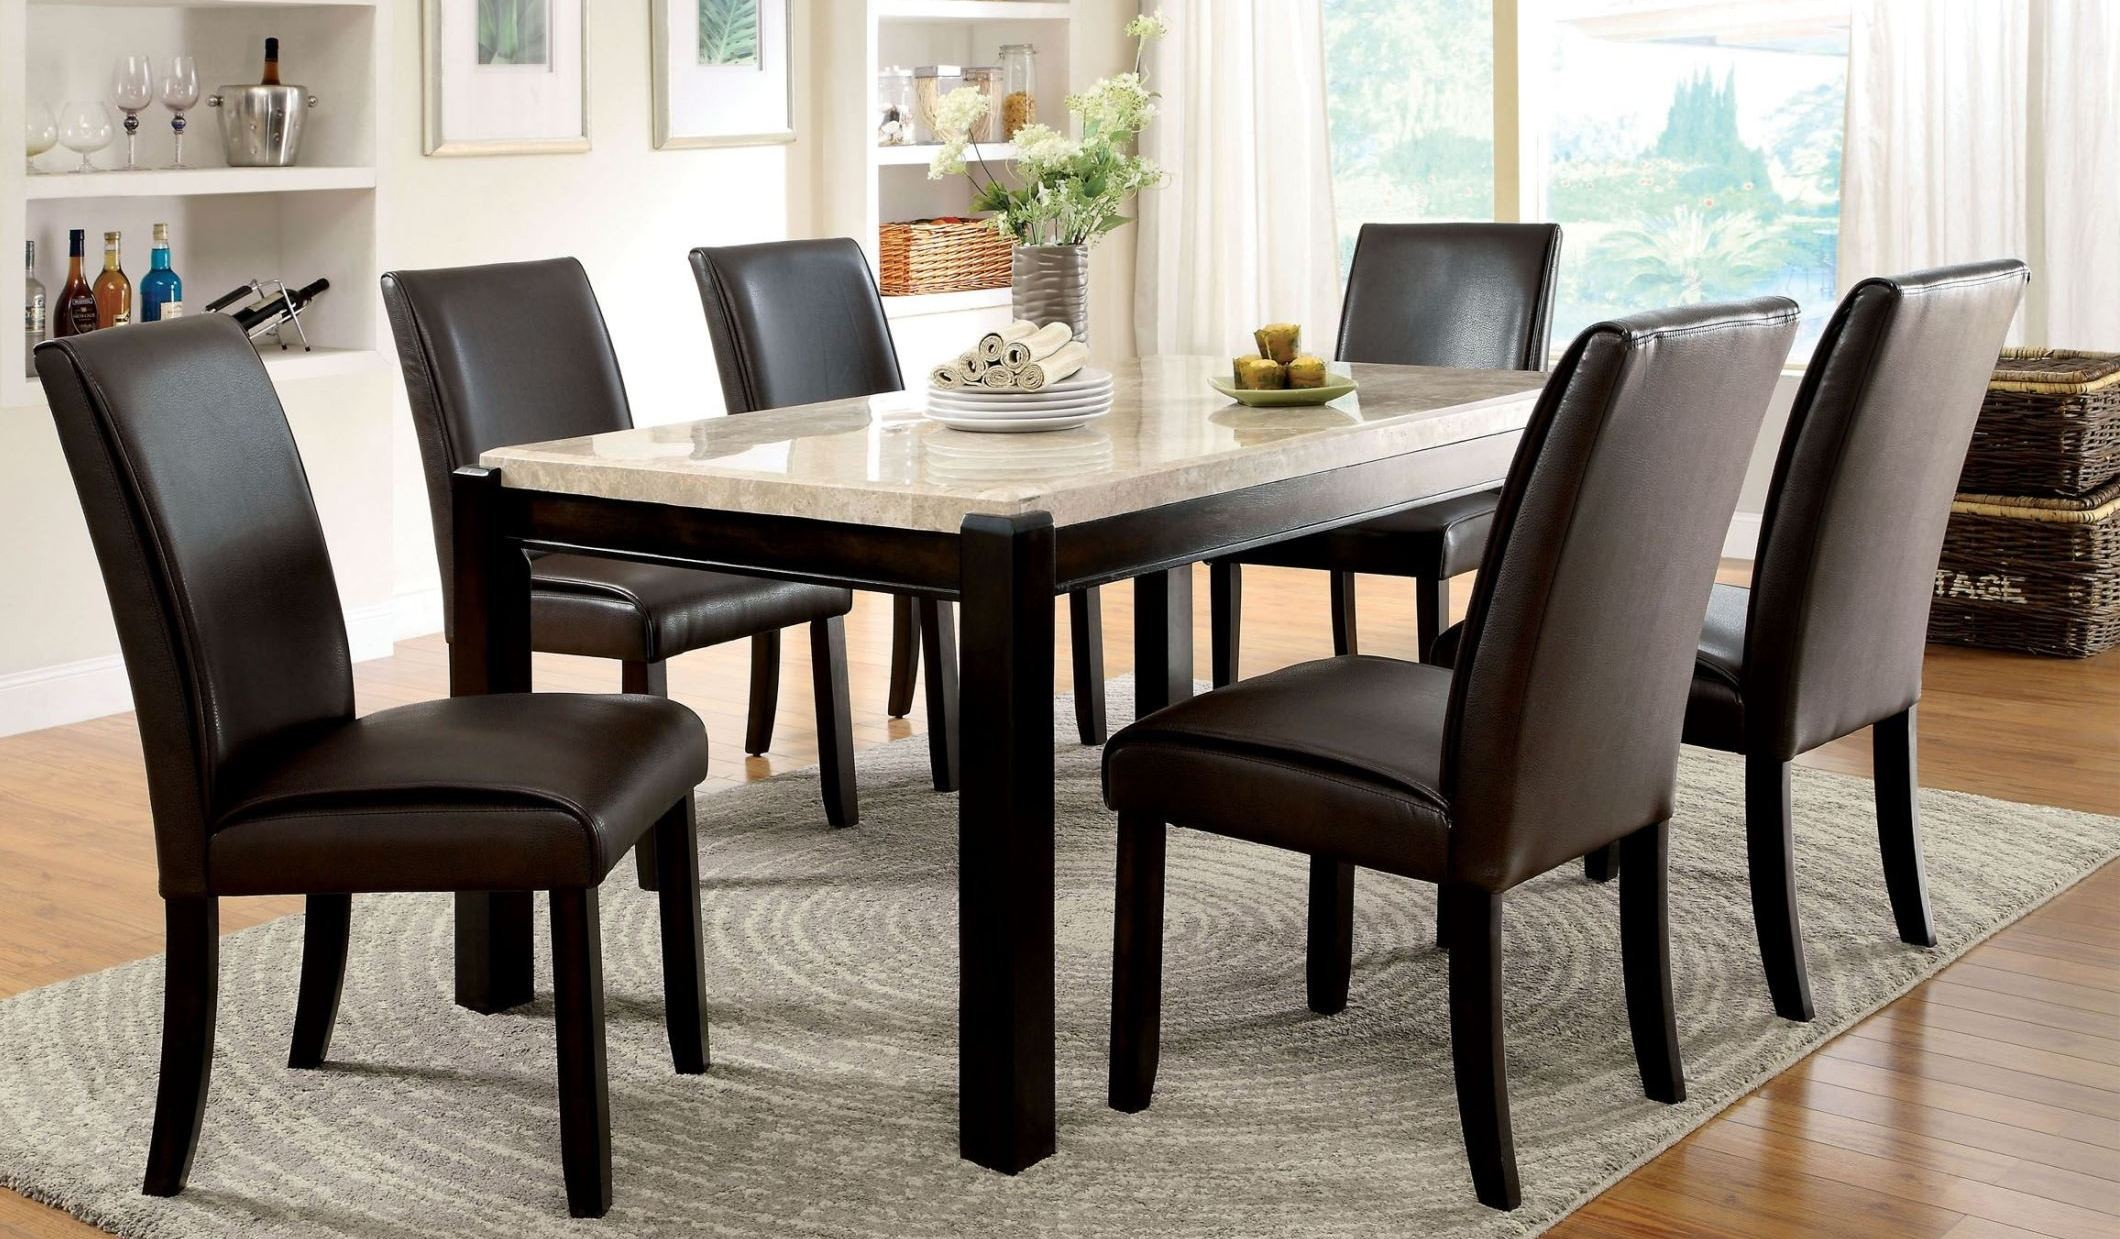 Gladstone I China Marble Table Top Dining Room Set from ...